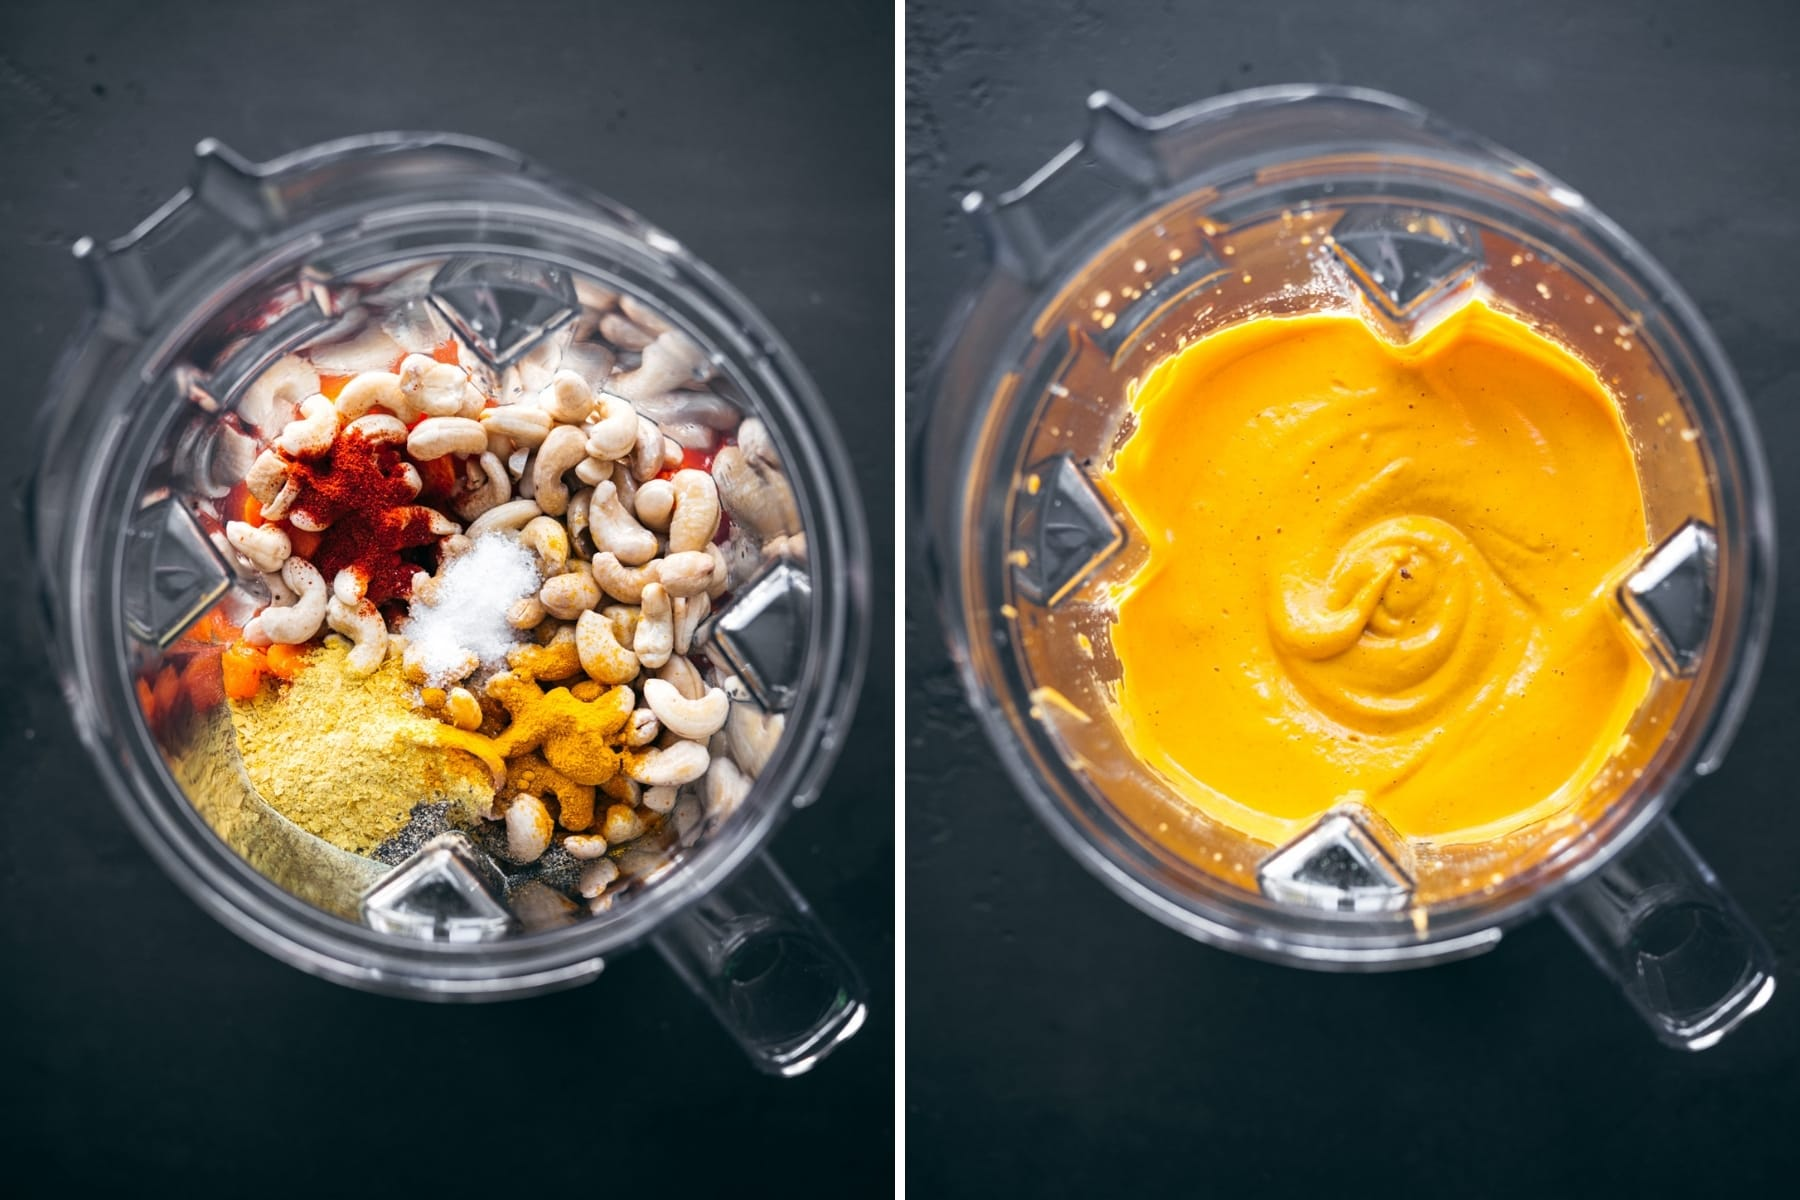 before and after blending roasted red pepper cashew cream sauce in blender.